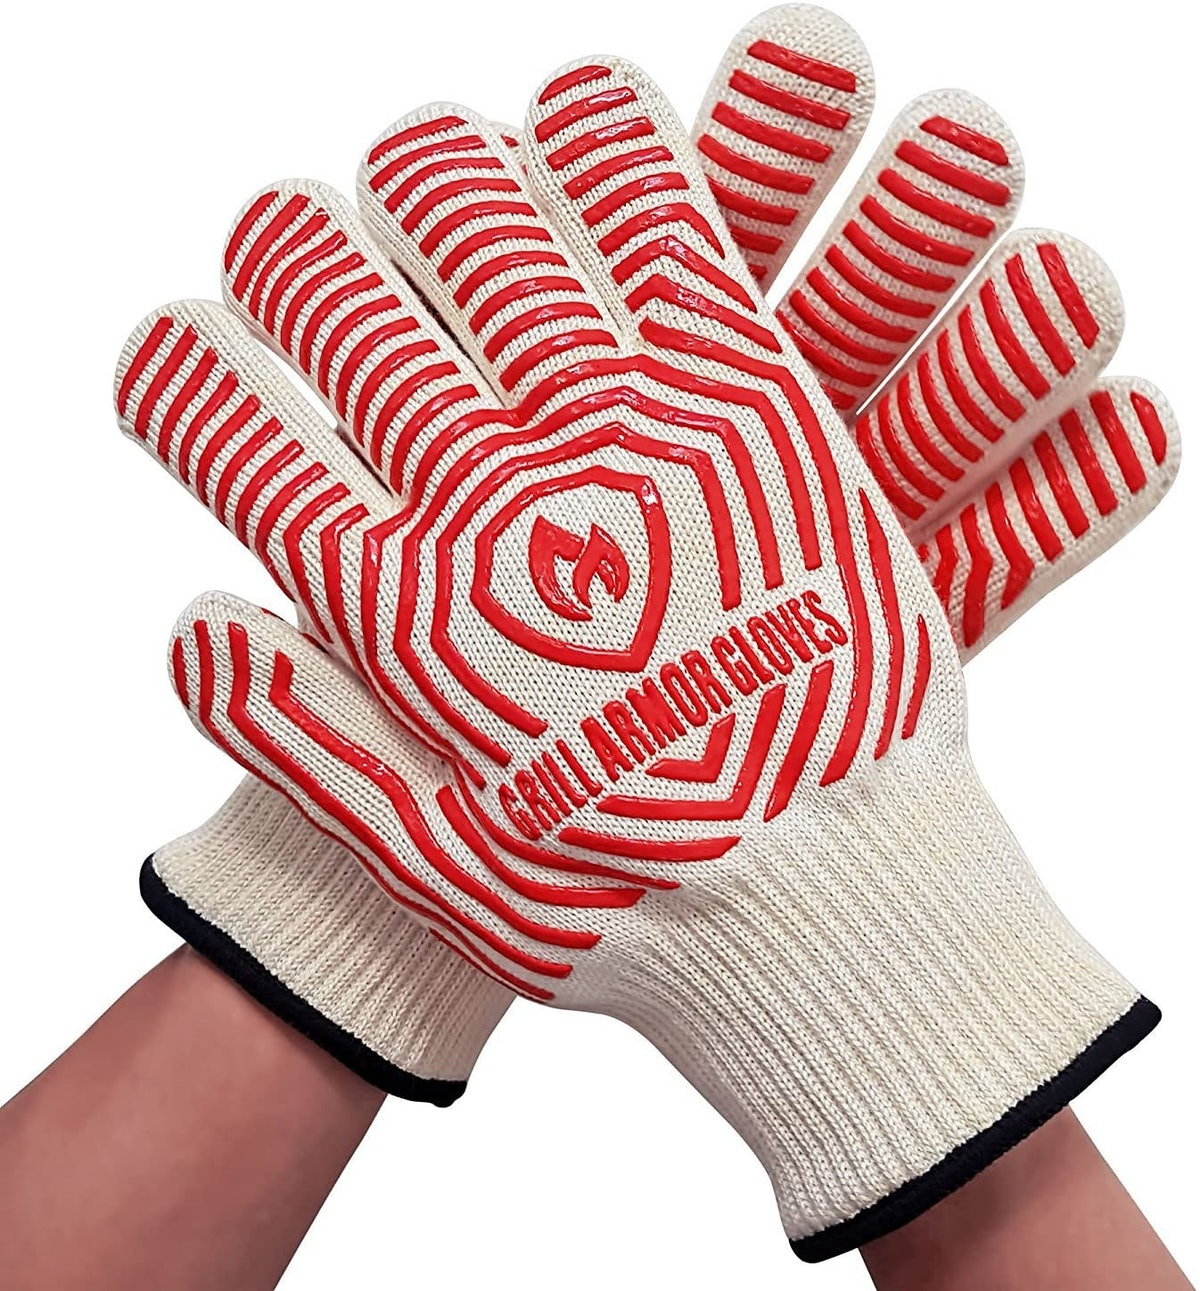 Grill Armor Extreme Heat Oven Gloves